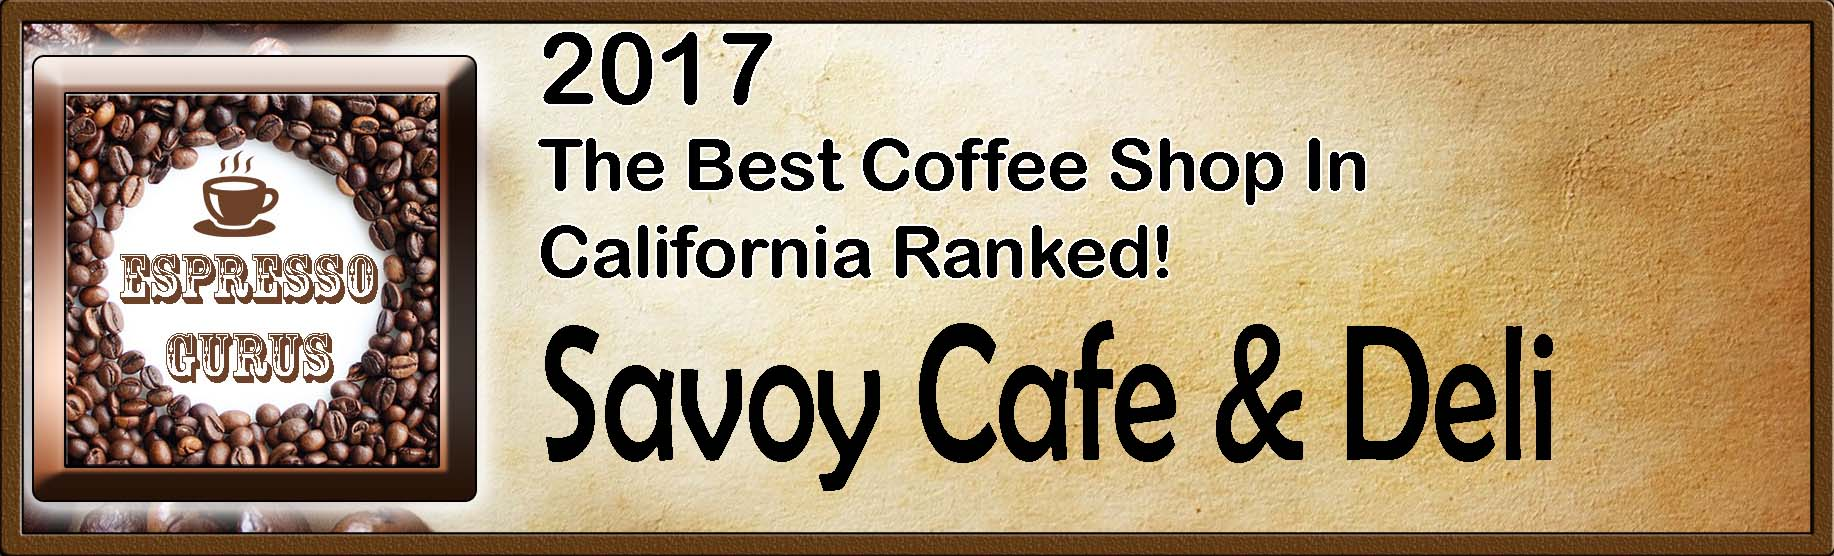 The Best Coffee Shop In California Ranked - 2017